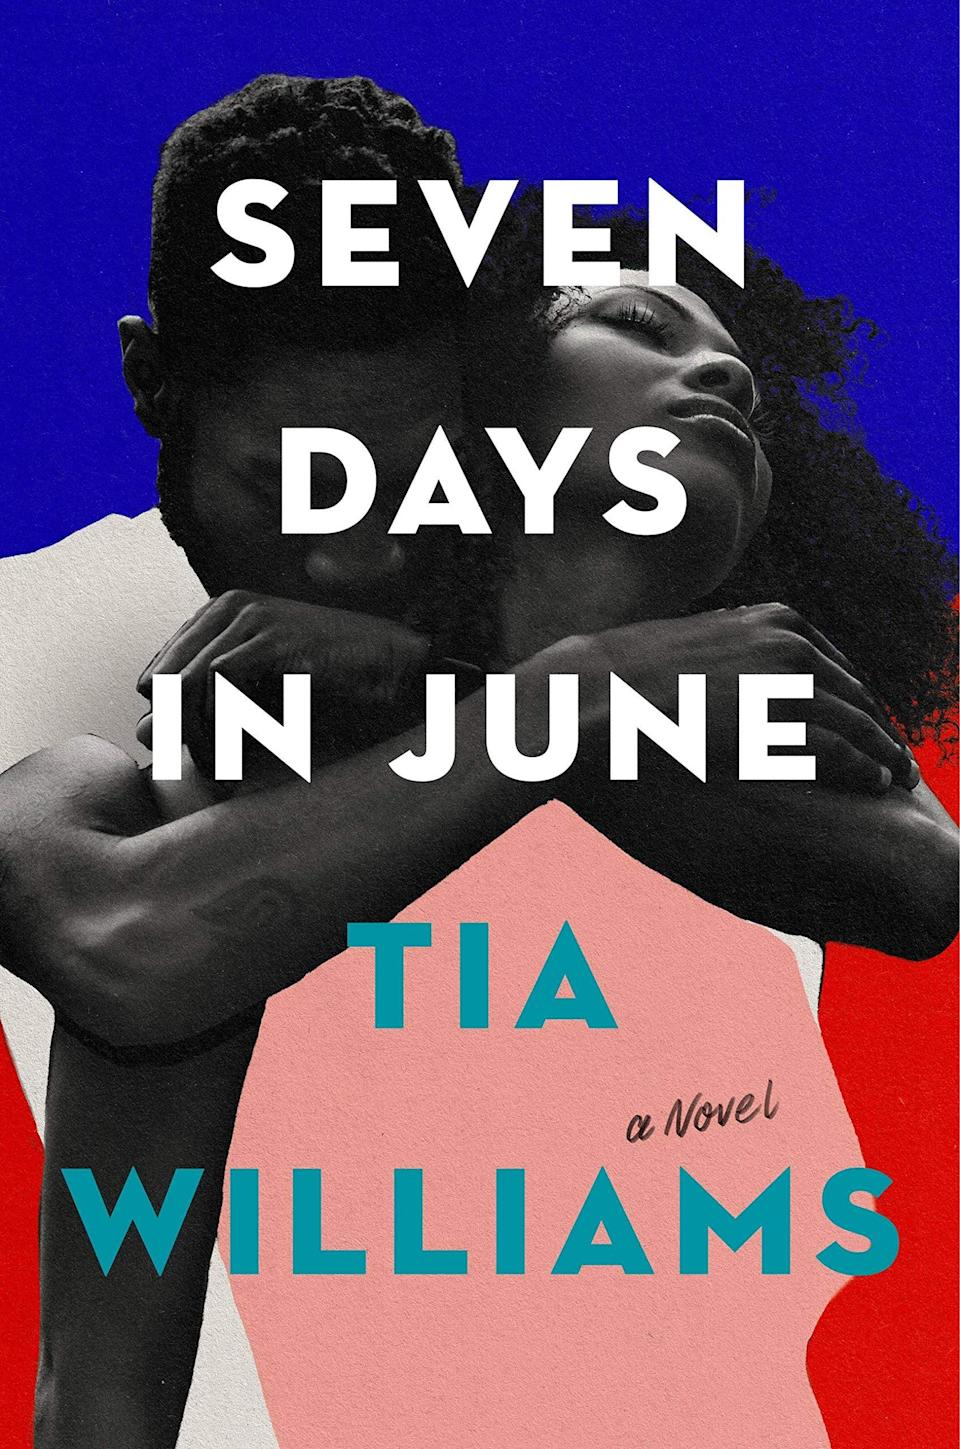 <p>Tia Williams's sultry love story <span><strong>Seven Days in June</strong></span> is a beautiful ode to Black joy. It's been 15 years since authors Shane and Eva fell in love across seven magical days, and now that circumstances have brought them together again, they might just have a second chance at making their romance last. </p> <p><em>Out June 1</em></p>